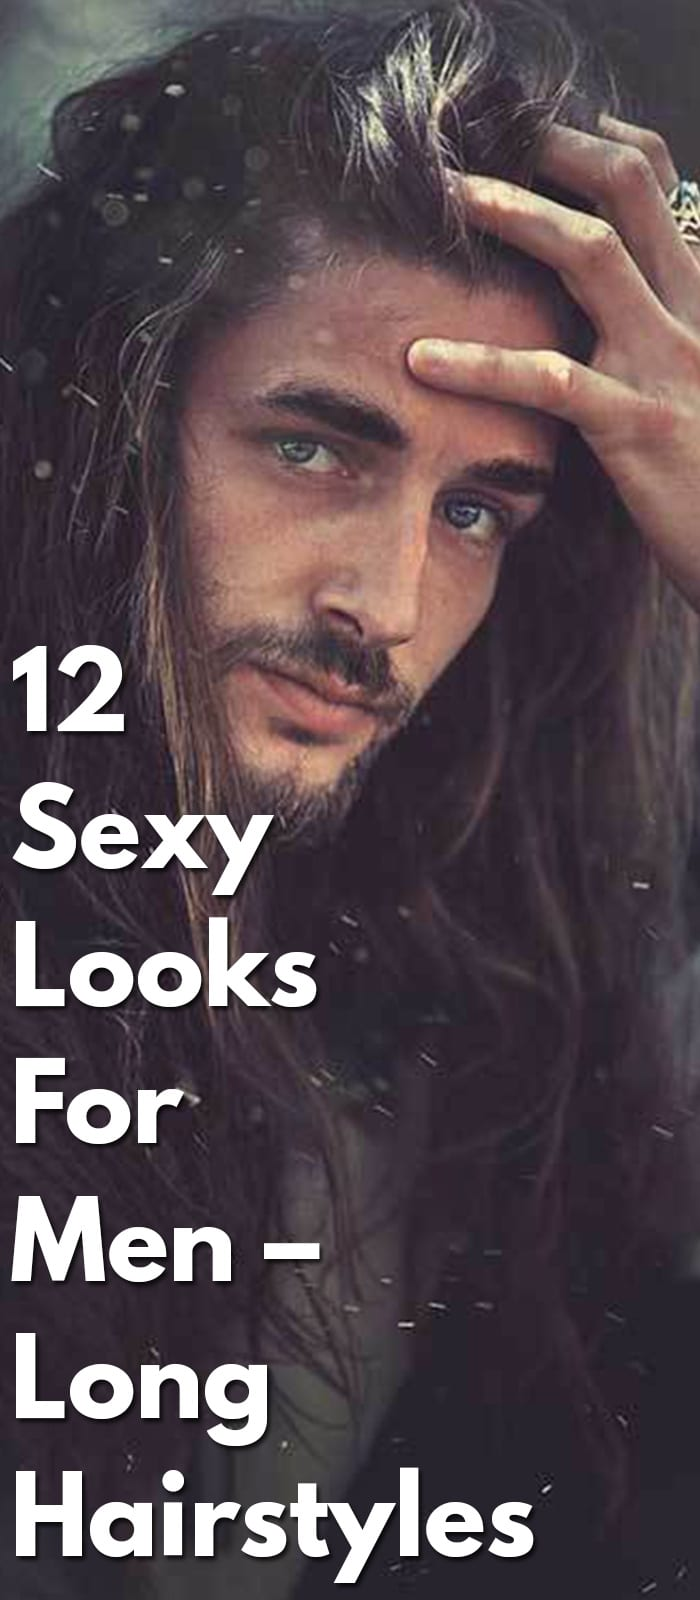 12-Sexy-Looks-For-Men-–-Long-Hairstyles.